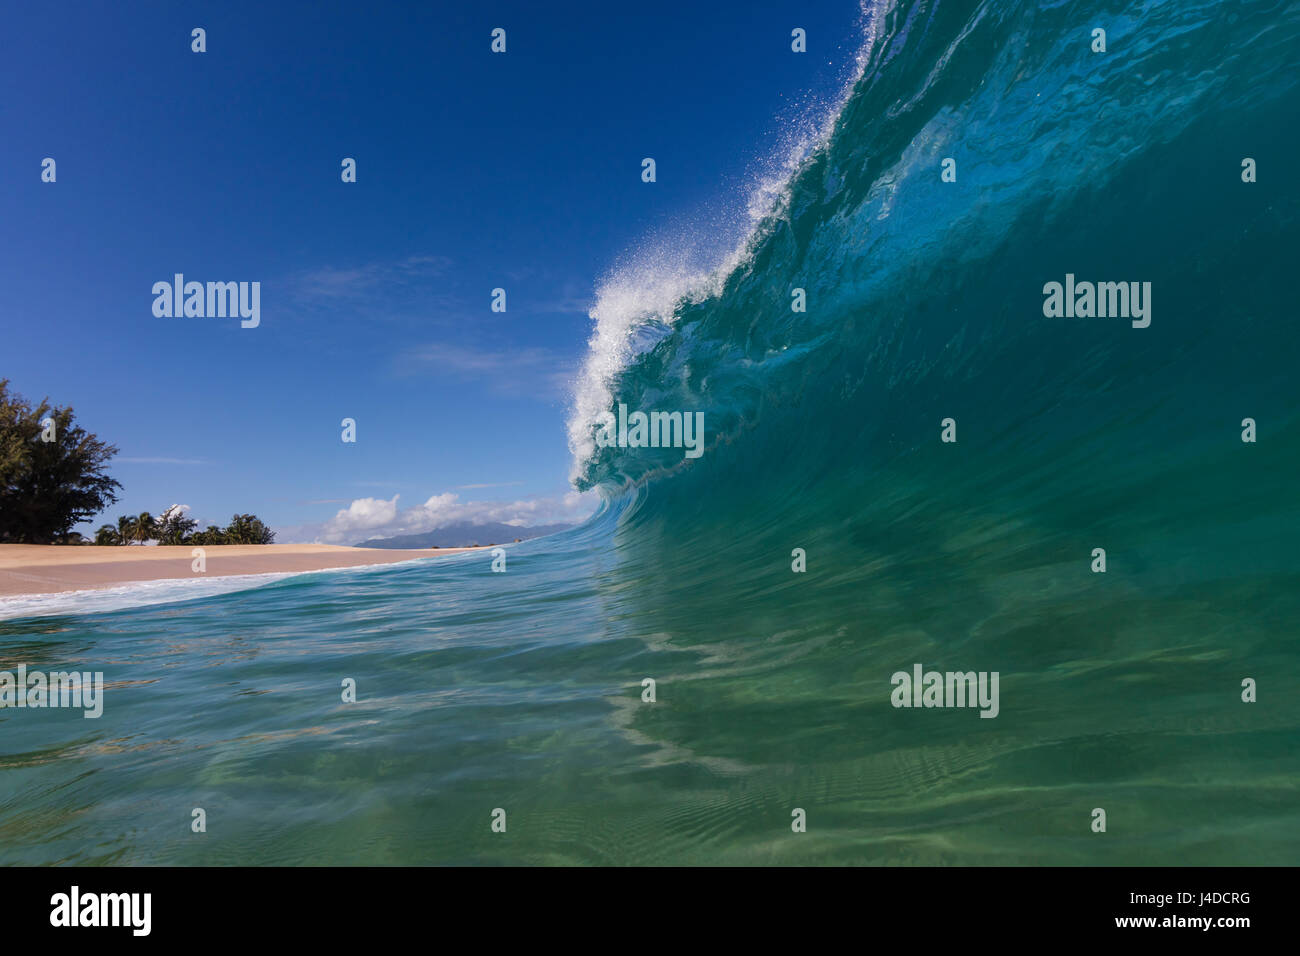 A shorebreak wave at Keiki beach on the North Shore of Oahu. - Stock Image